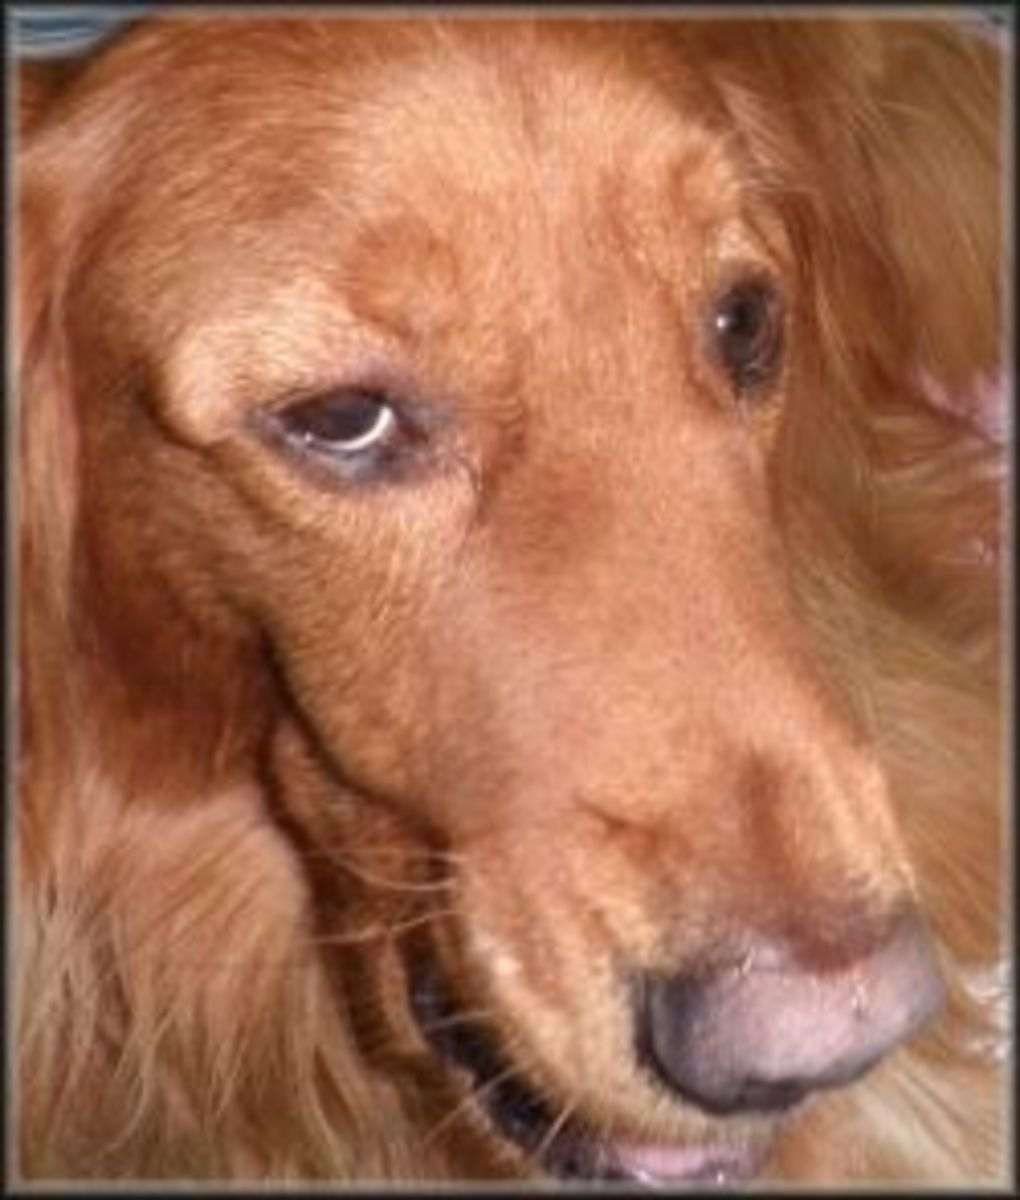 Photo of my dog that was stung by his eye.  If this happens to your pet, take him to a vet.